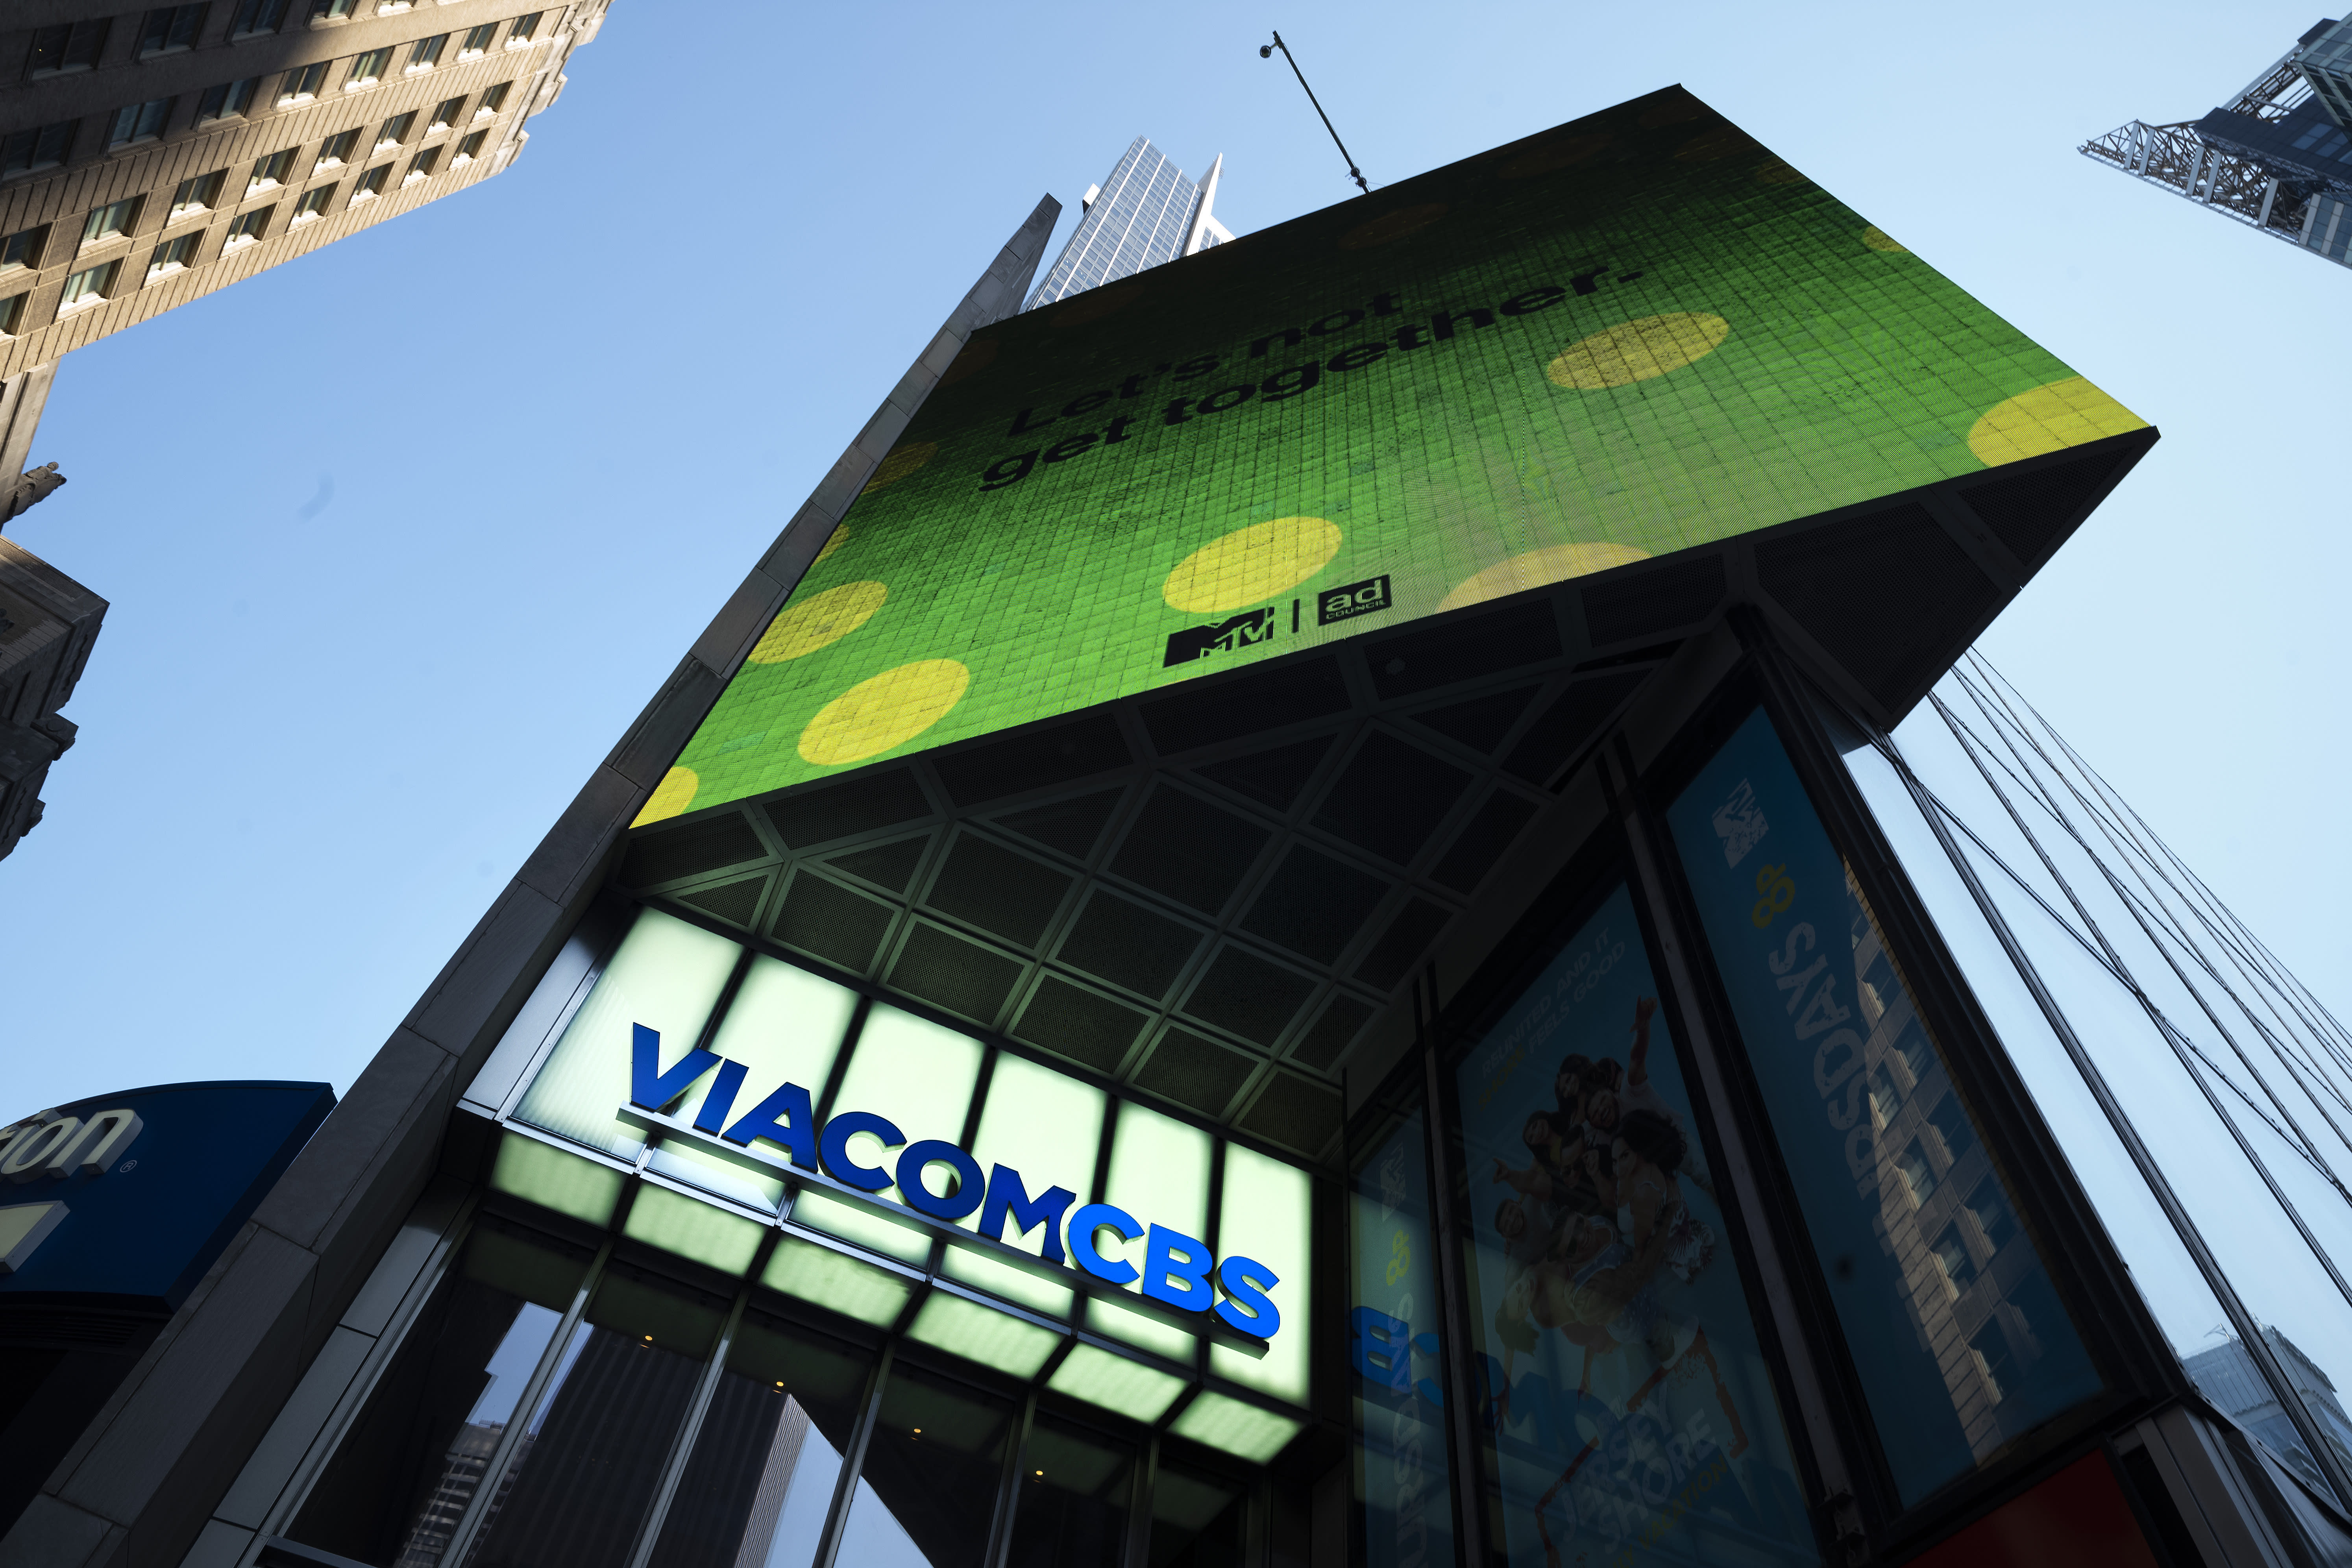 """FILE - The ViacomCBS headquarters is shown in New York's Times Square on Aug. 5, 2020. CBS News is rebuilding MTV's old """"Total Request Live"""" studio as its headquarters for election night. The network is installing giant touchscreens and """"augmented reality"""" displays for the big political night and says the studio provides extra roominess to put on a television show in the COVID-19 era. (AP Photo/Mark Lennihan, File)"""